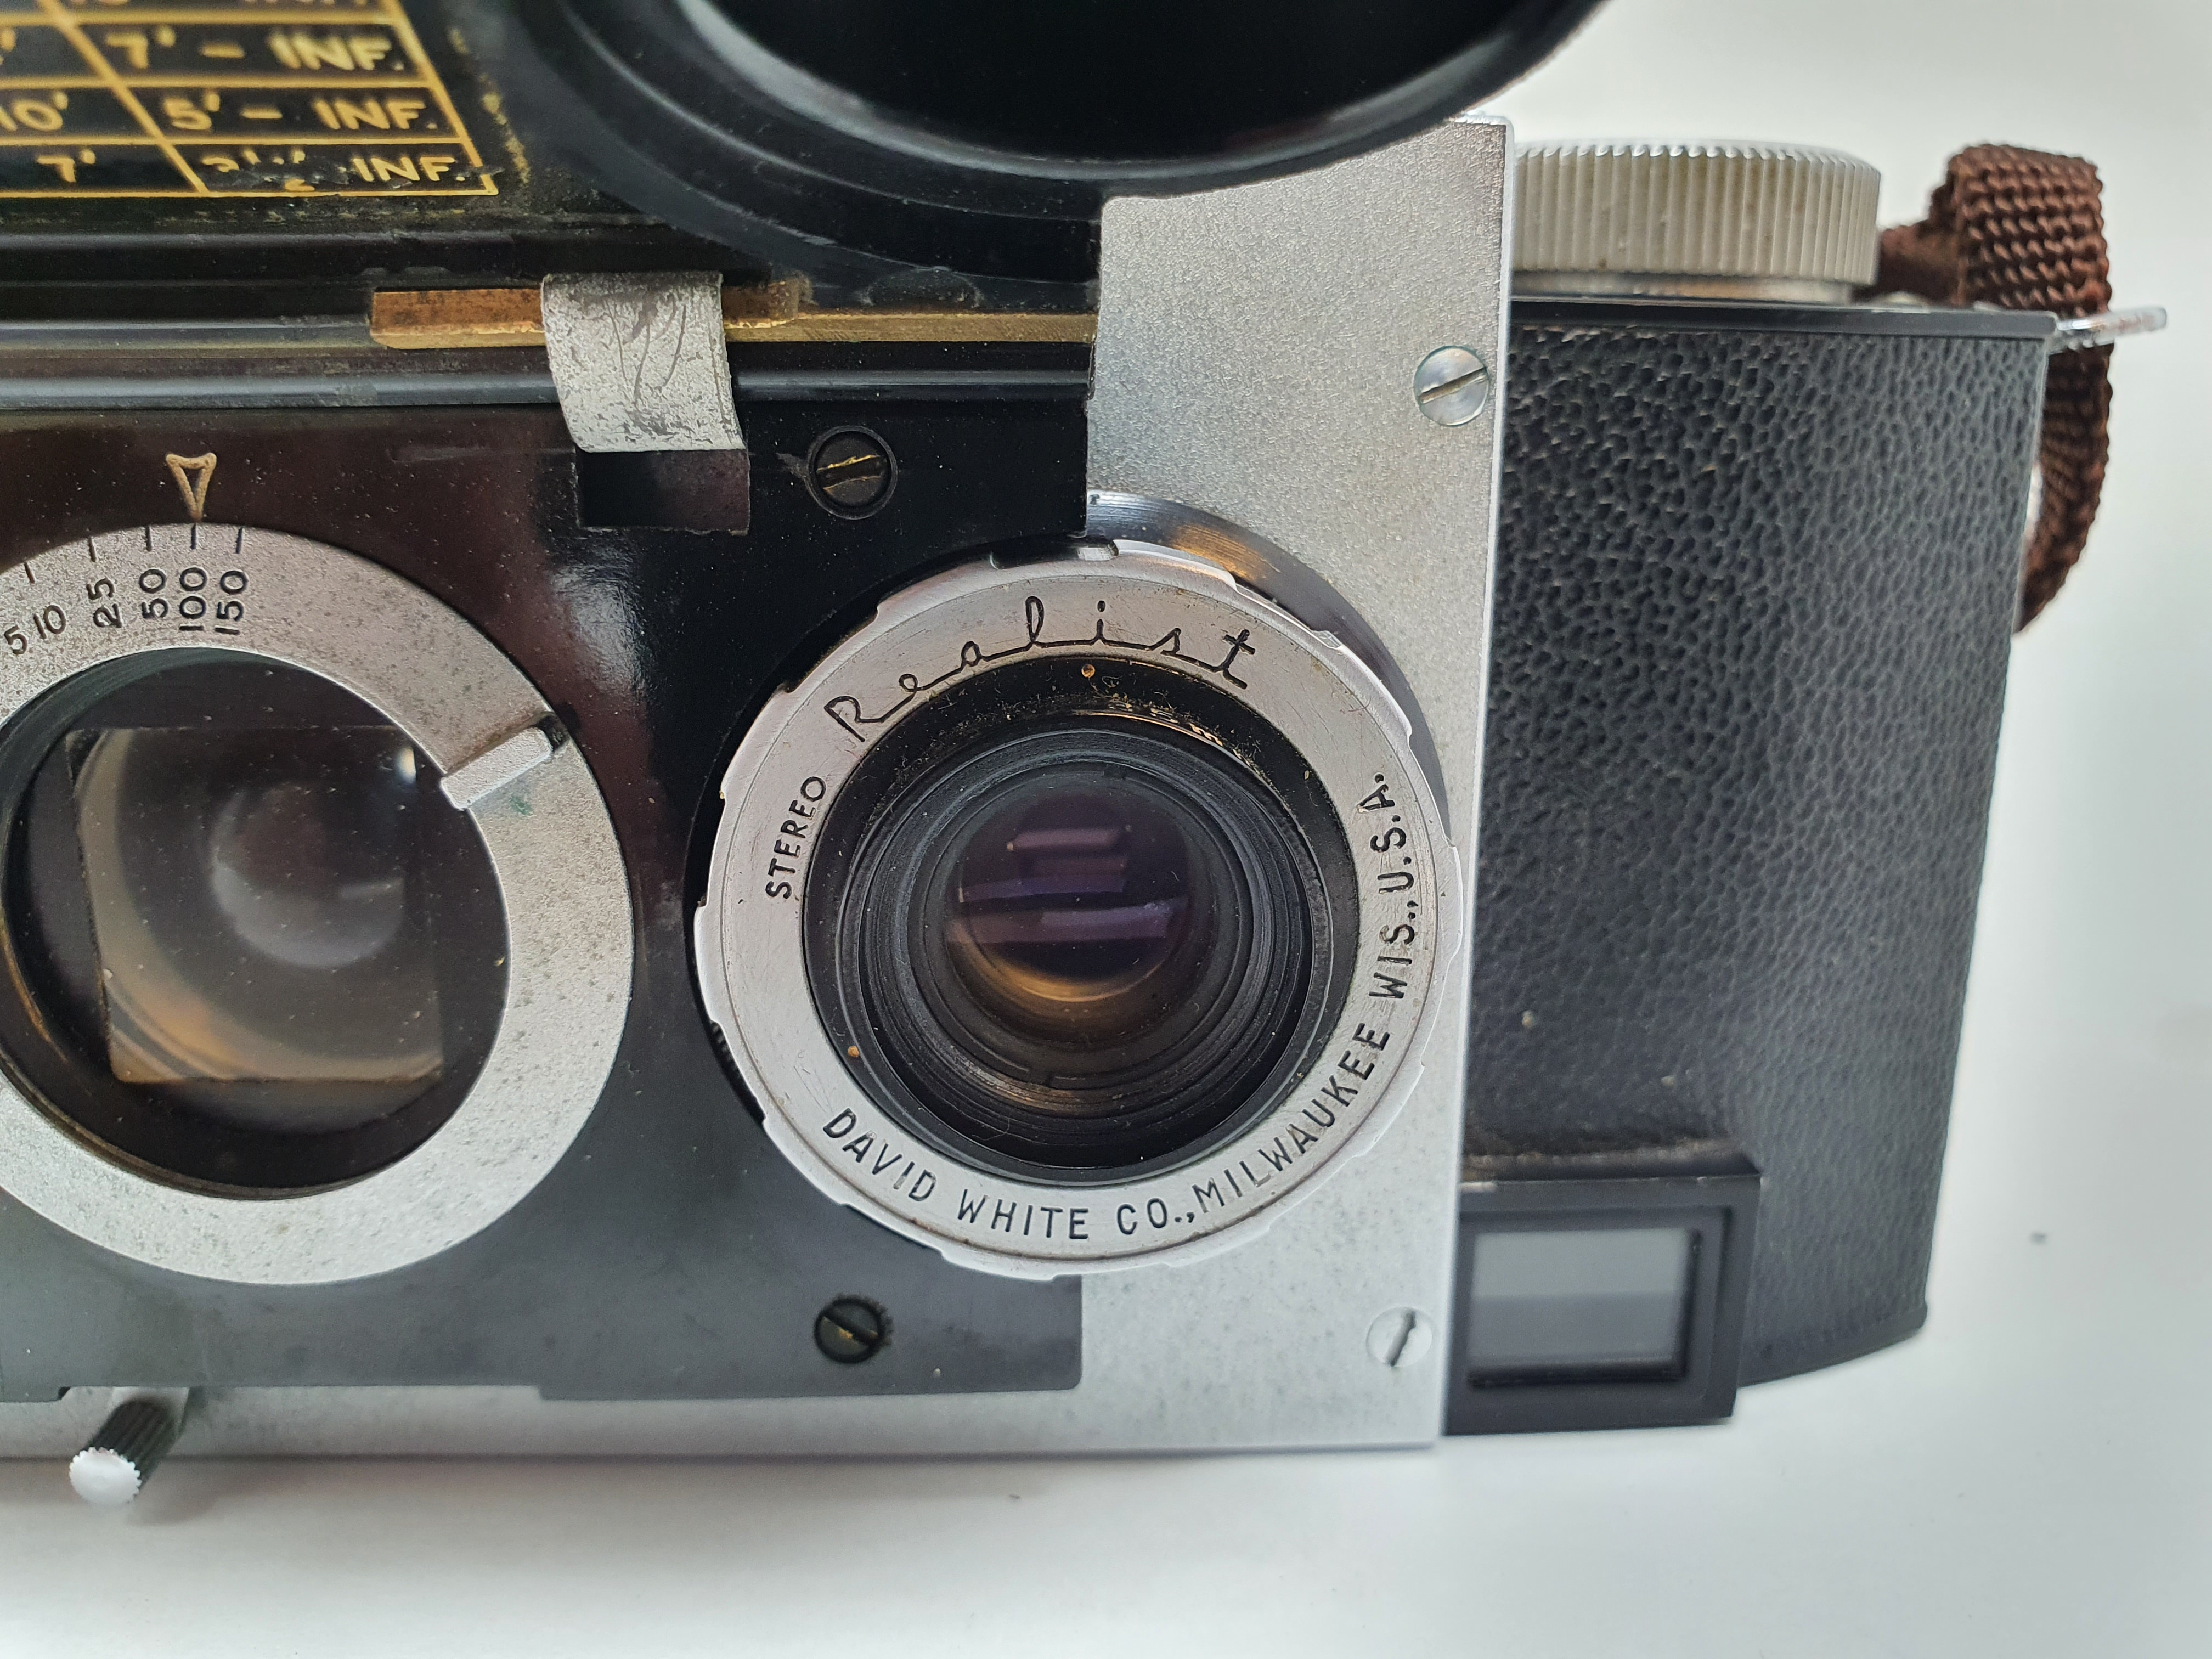 A Stereo Realist camera, with leather outer case Provenance: Part of a vast single owner - Image 2 of 6